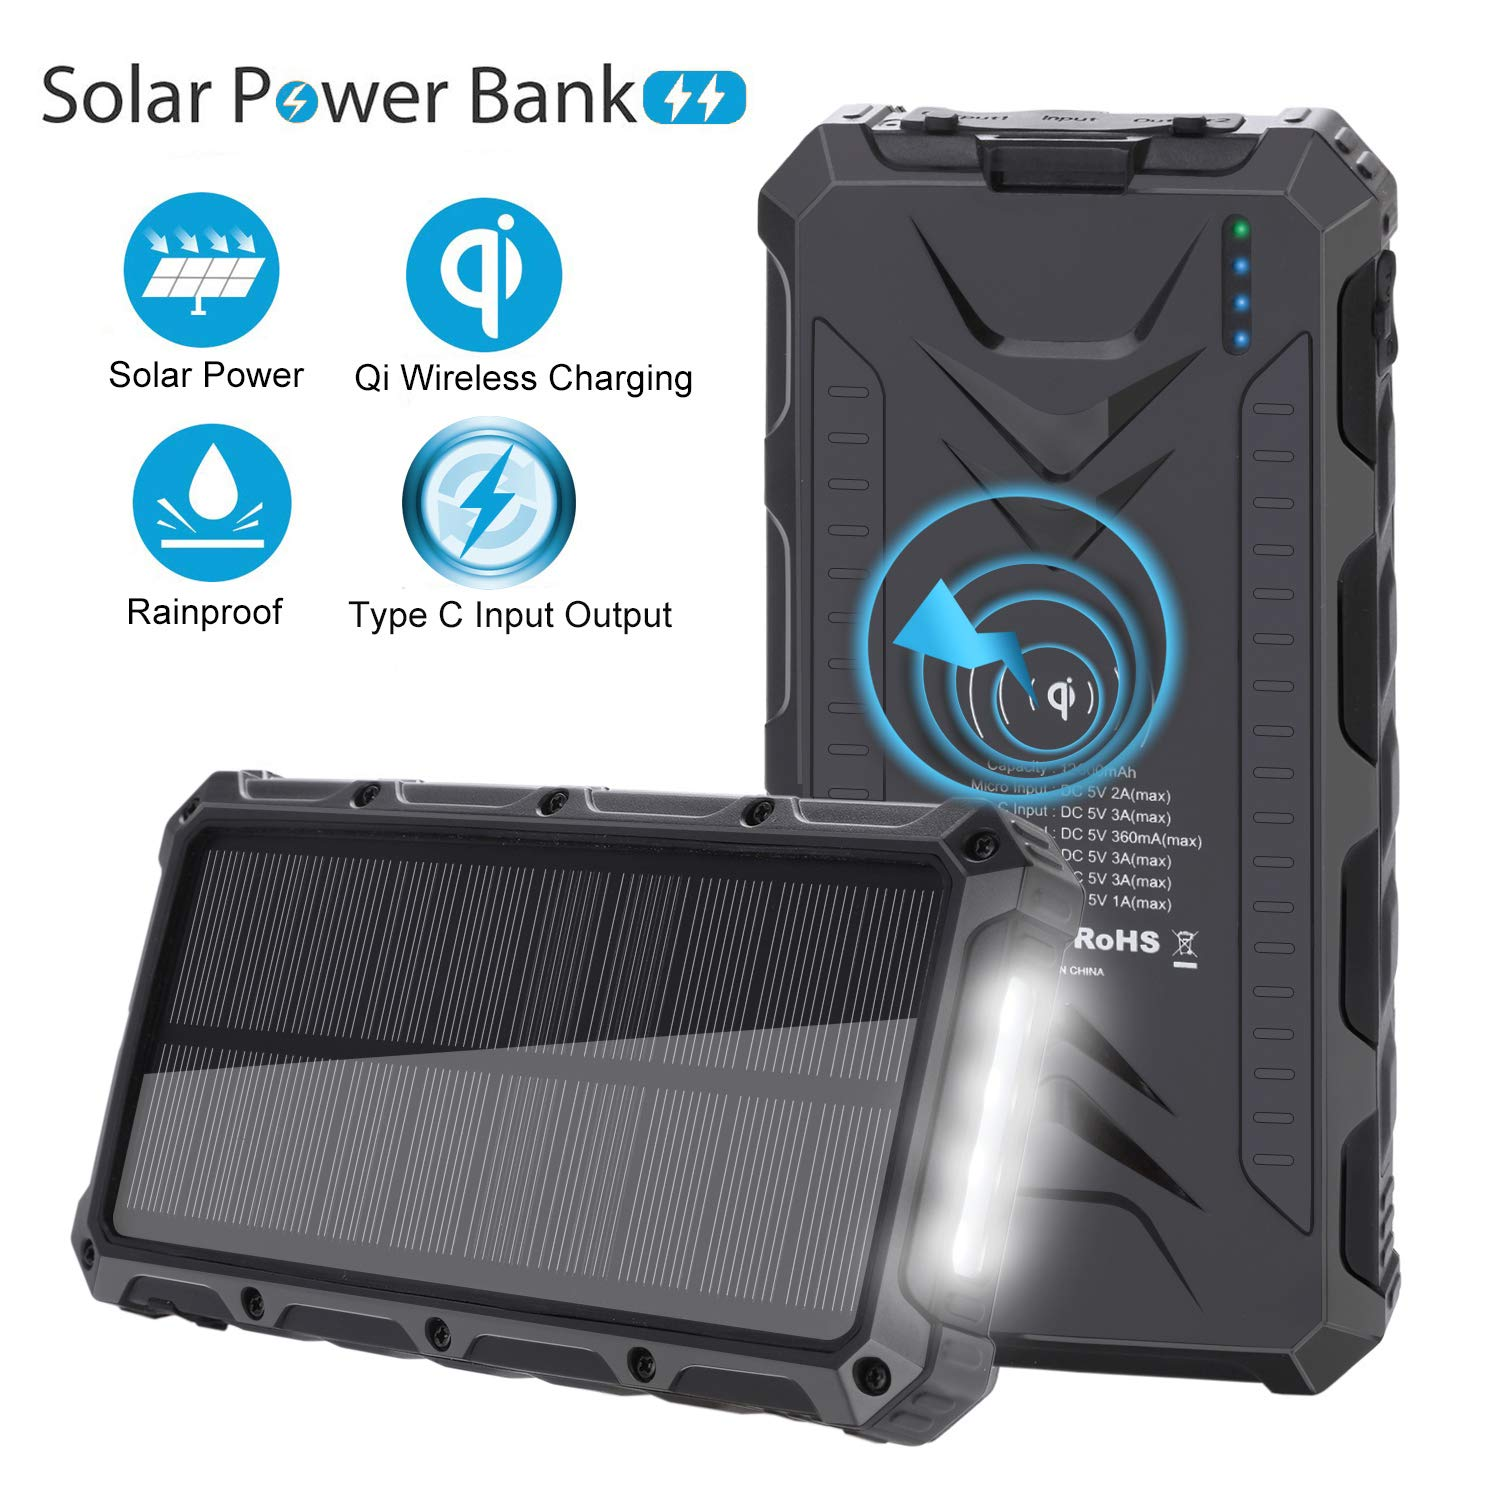 Solar Charger SendowTek Wireless Portable Charger 12000mAh Solar Power Bank Backup Battery with Type C High-Speed 5V/3A 3 Output Ports 4 LED Light Carabiner Rainproof for Cellphone and Outdoor Camping